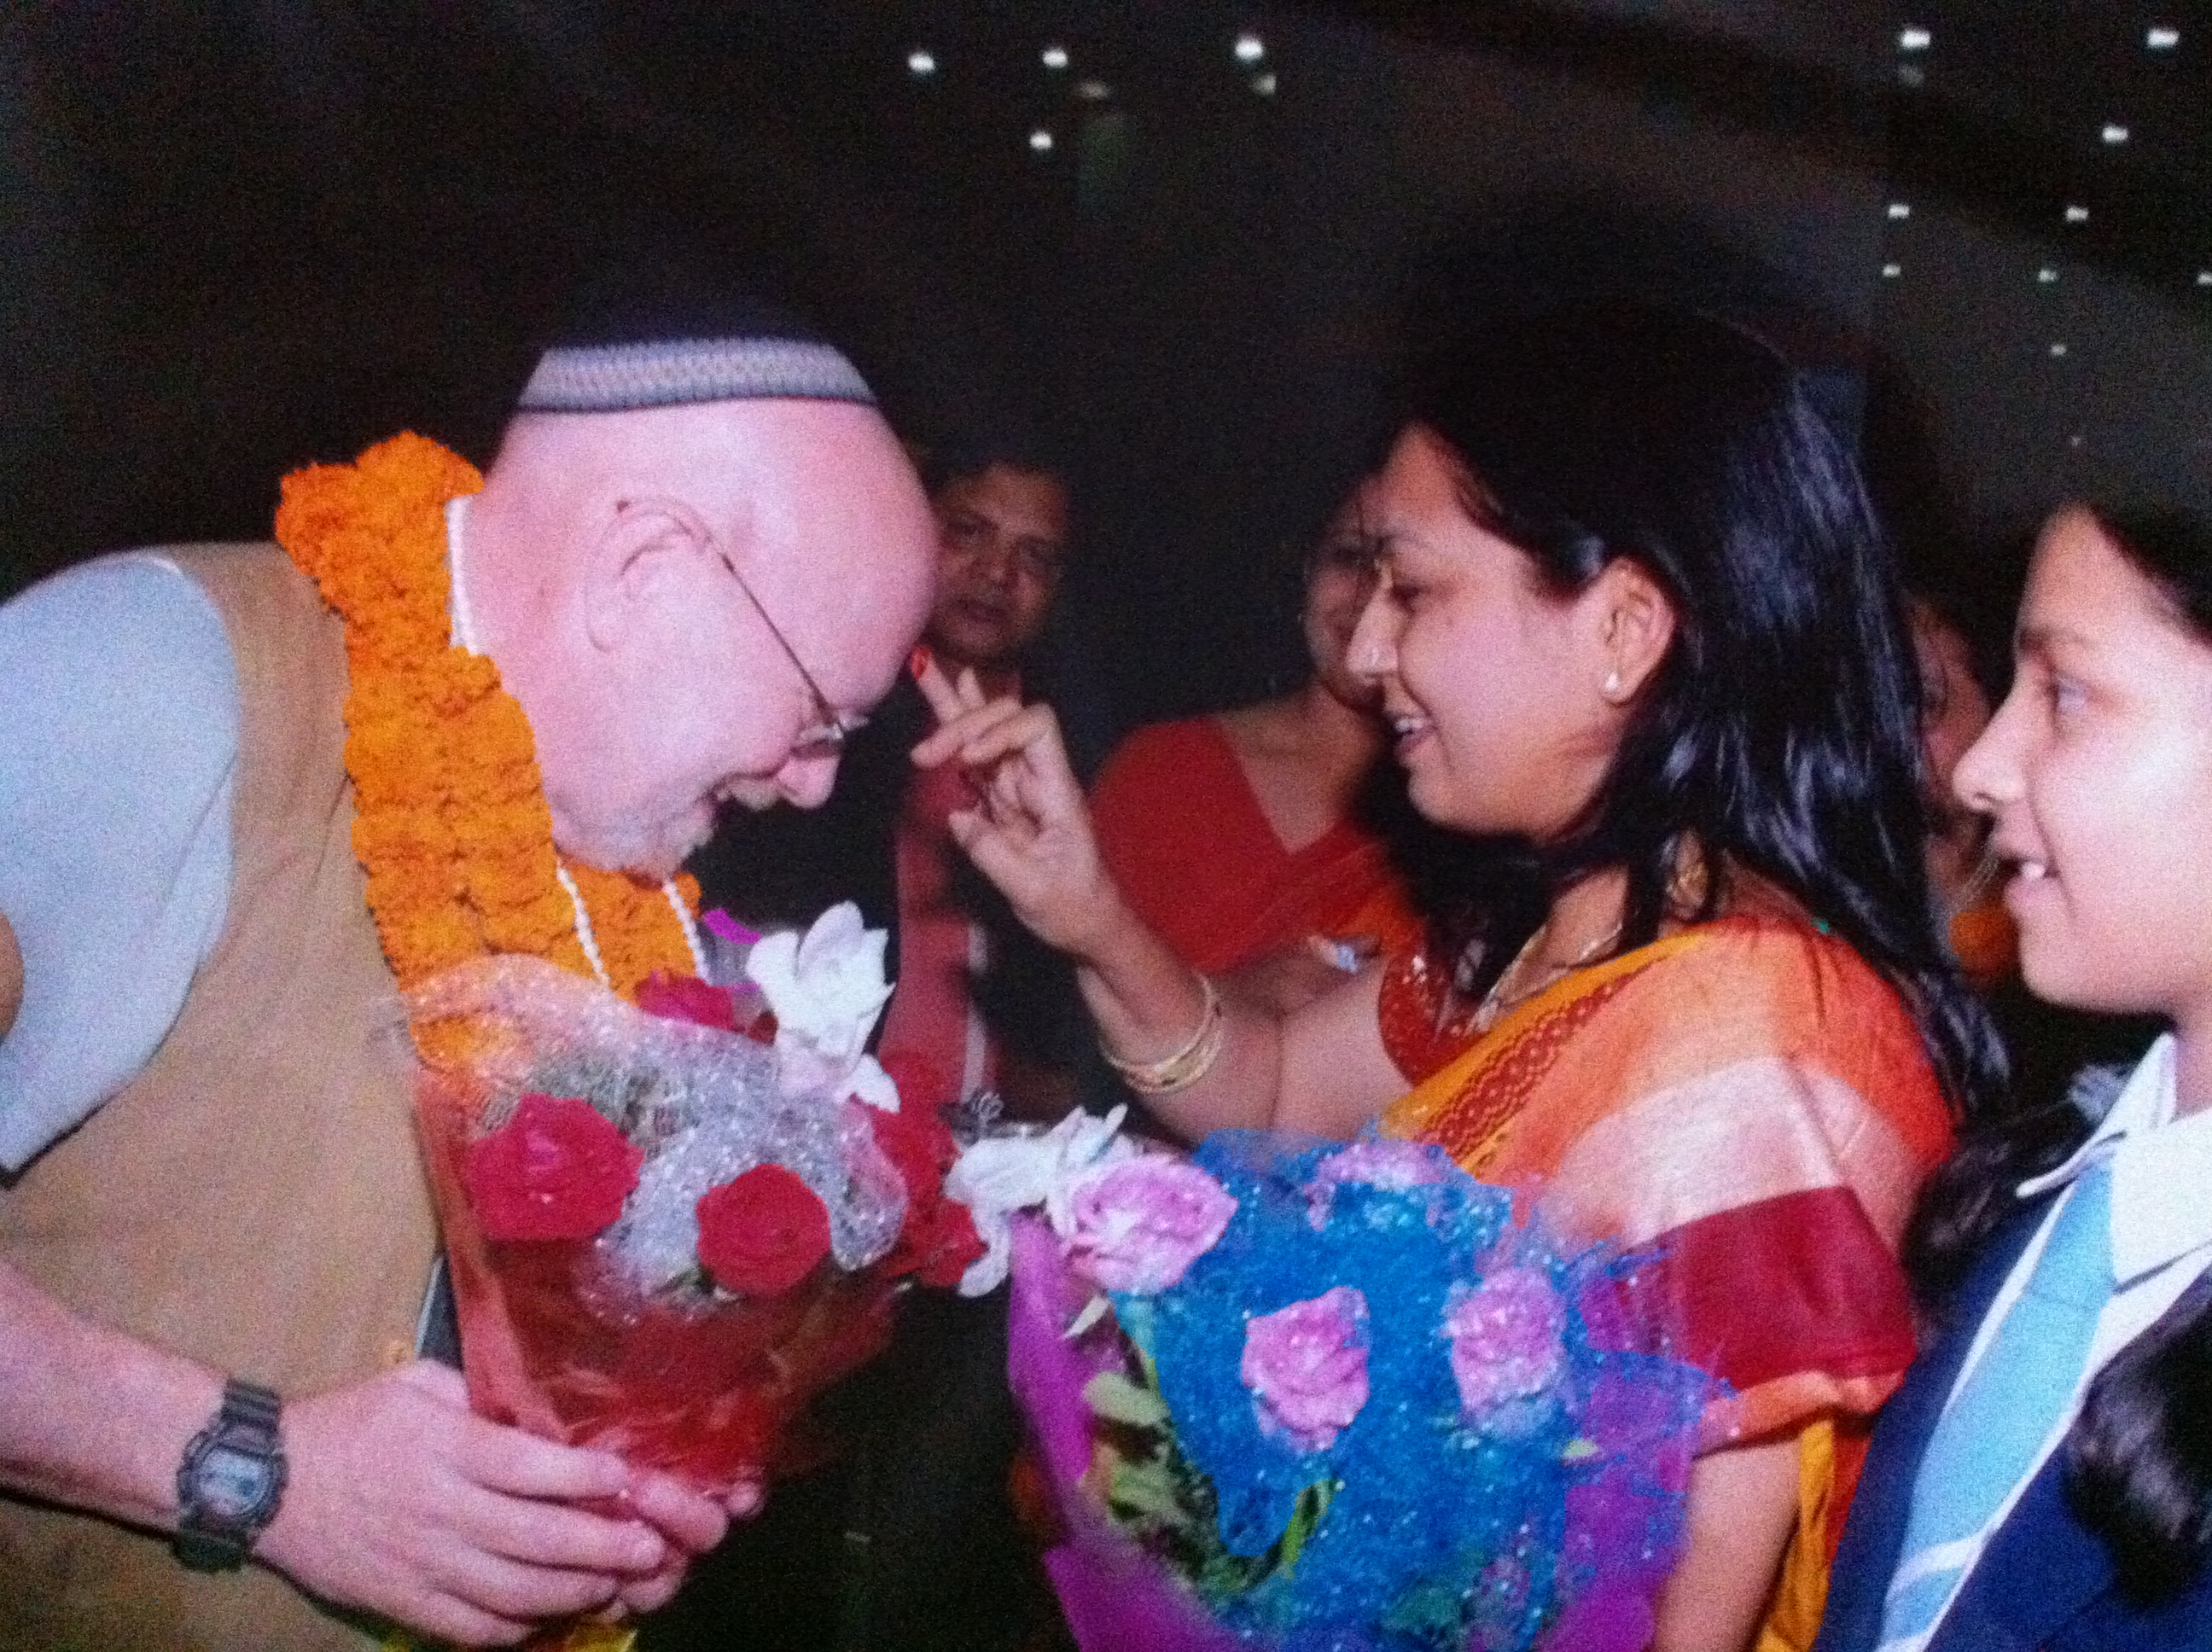 http://www.herenow4u.net/fileadmin/v3media/pics/organisations/Jain_Education_and_Research_Foundation/2010-11_Dr._Nathan_Katz_Visits_India/101122_Dr._Nathan_Katz_336.JPG